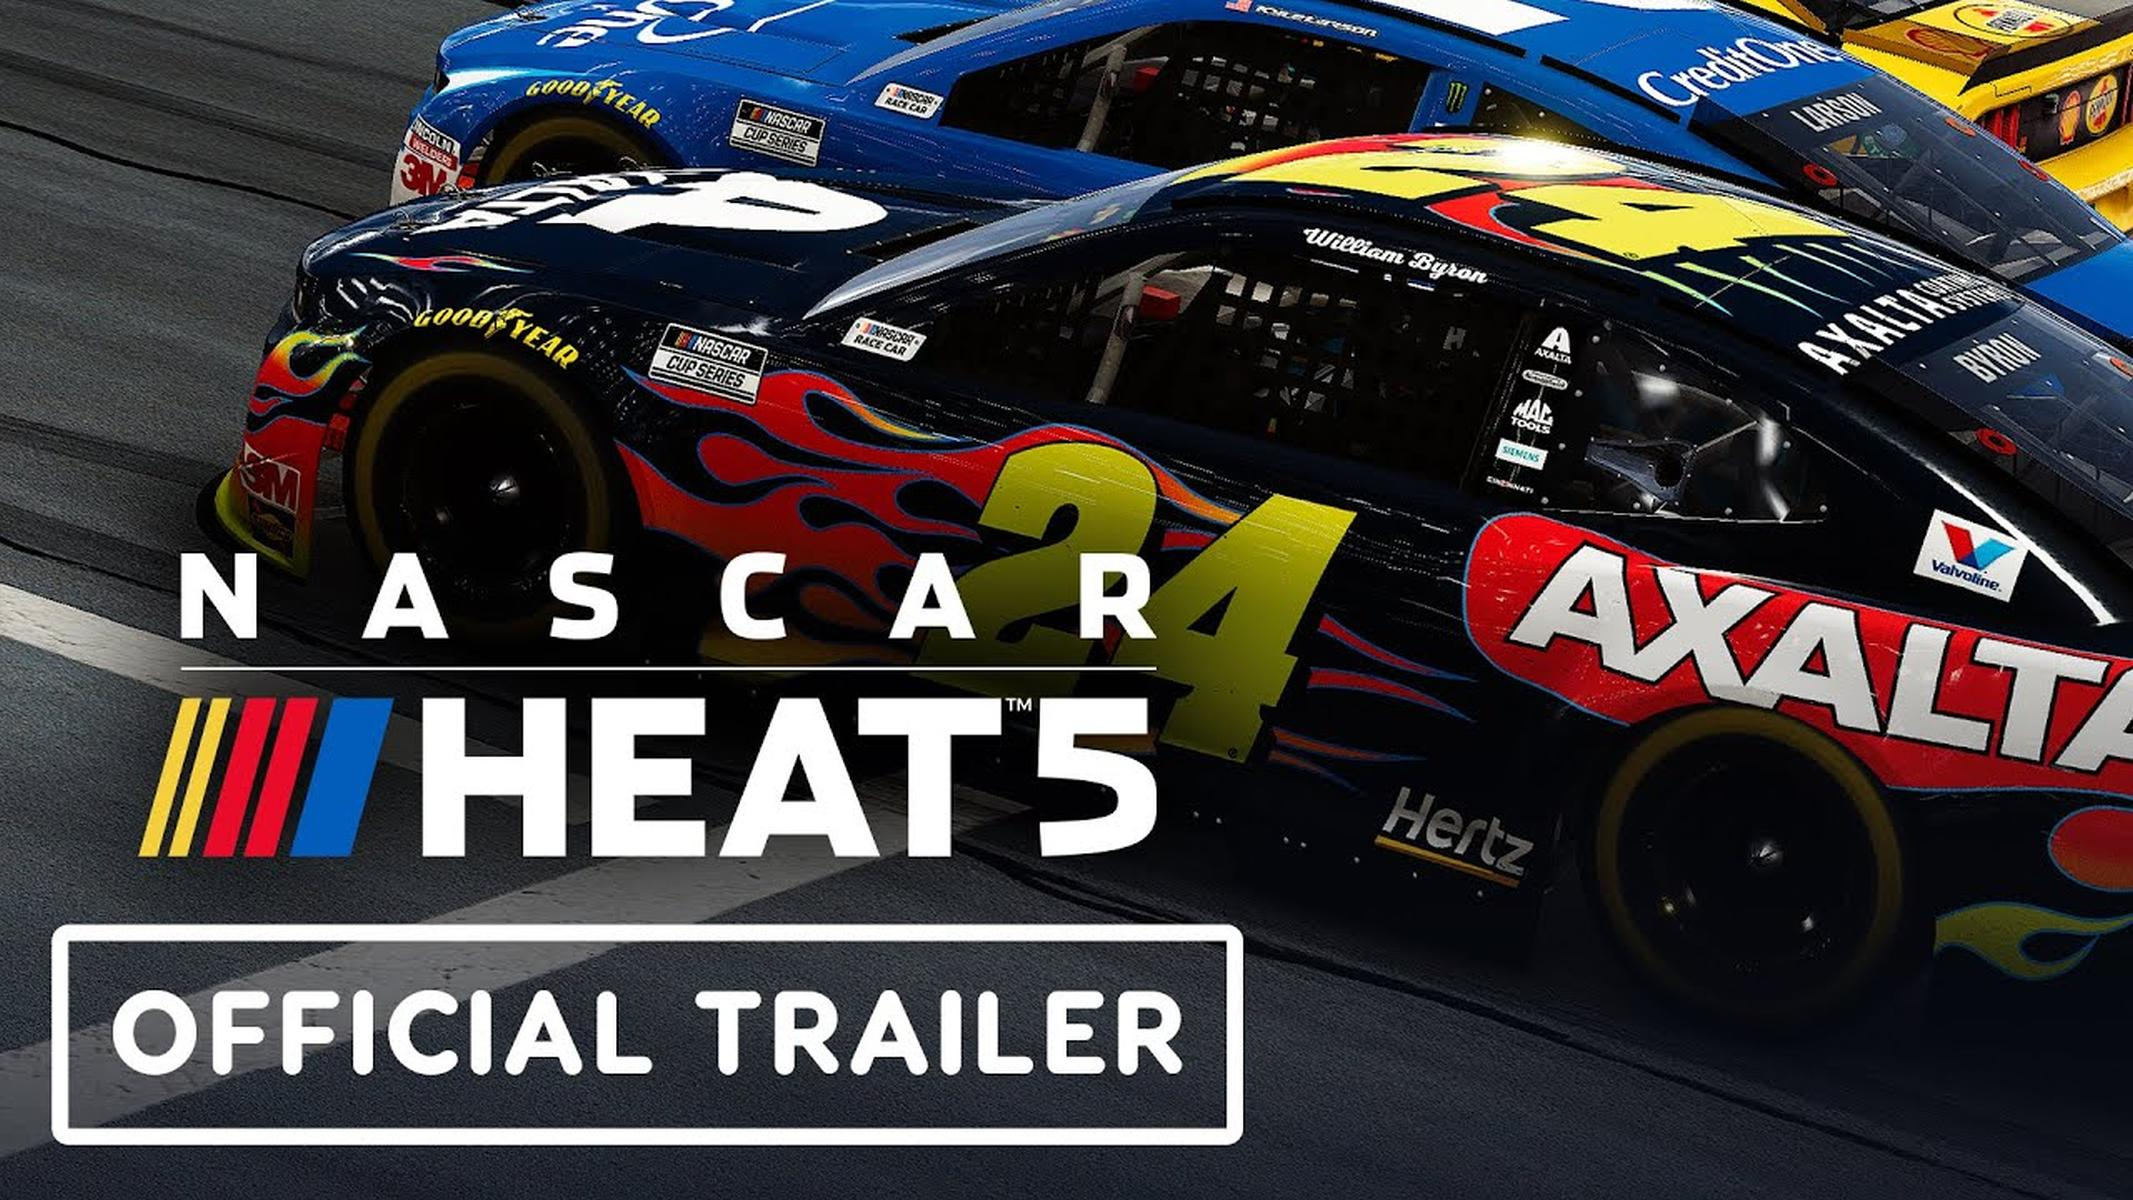 Nascar Heat 5 Gameplay Trailer